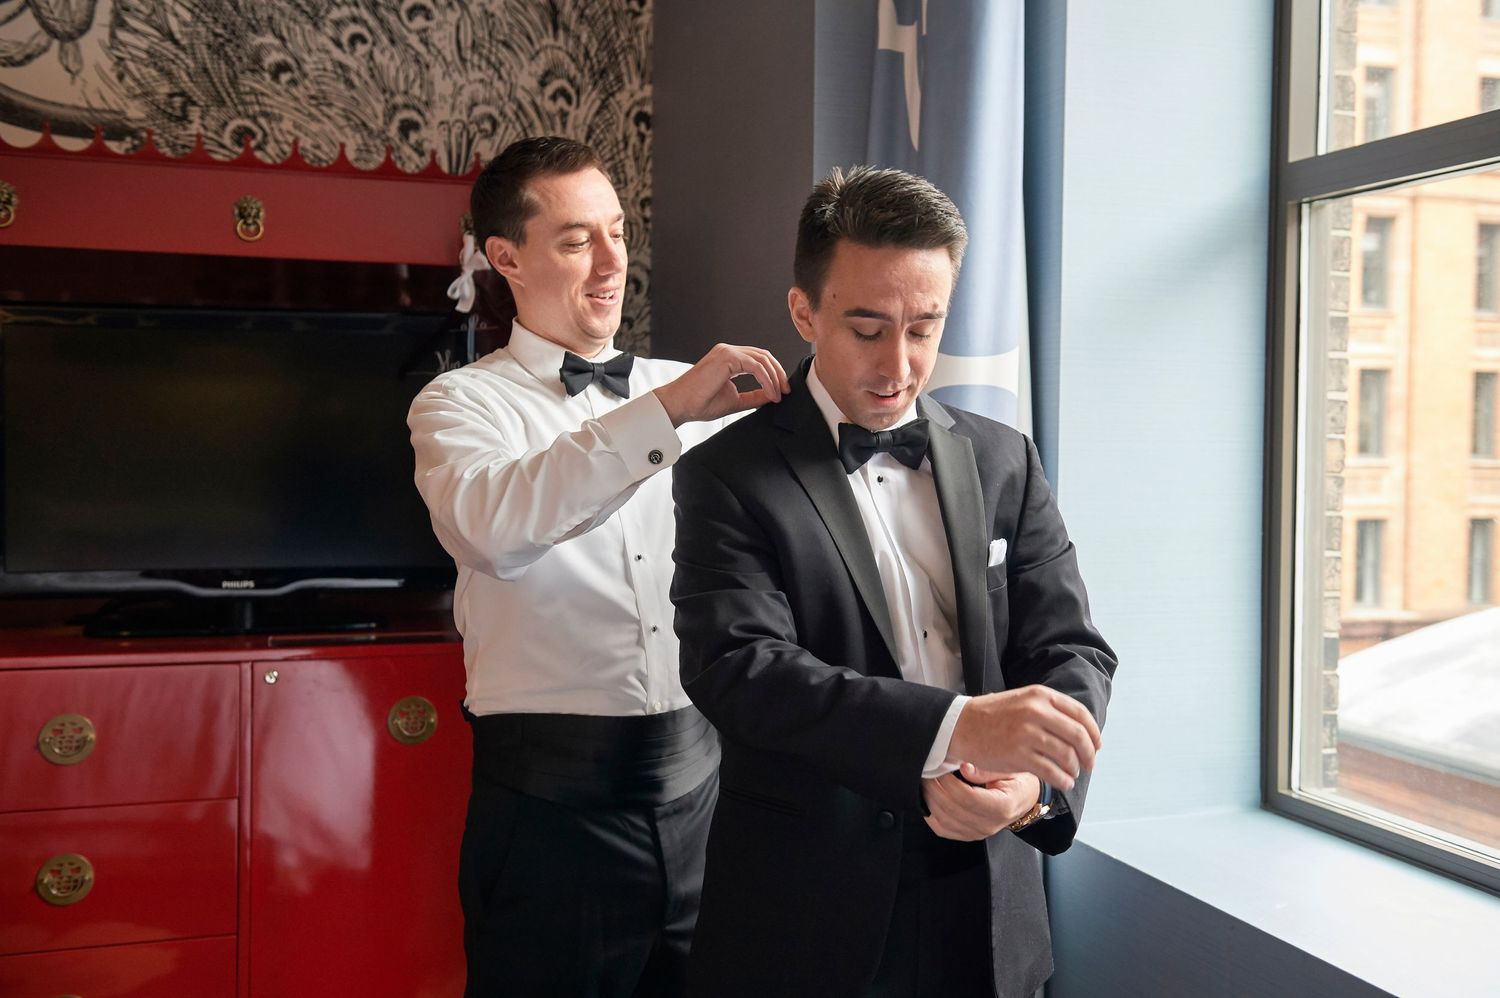 best man helping groom with jacket collar wedding photo